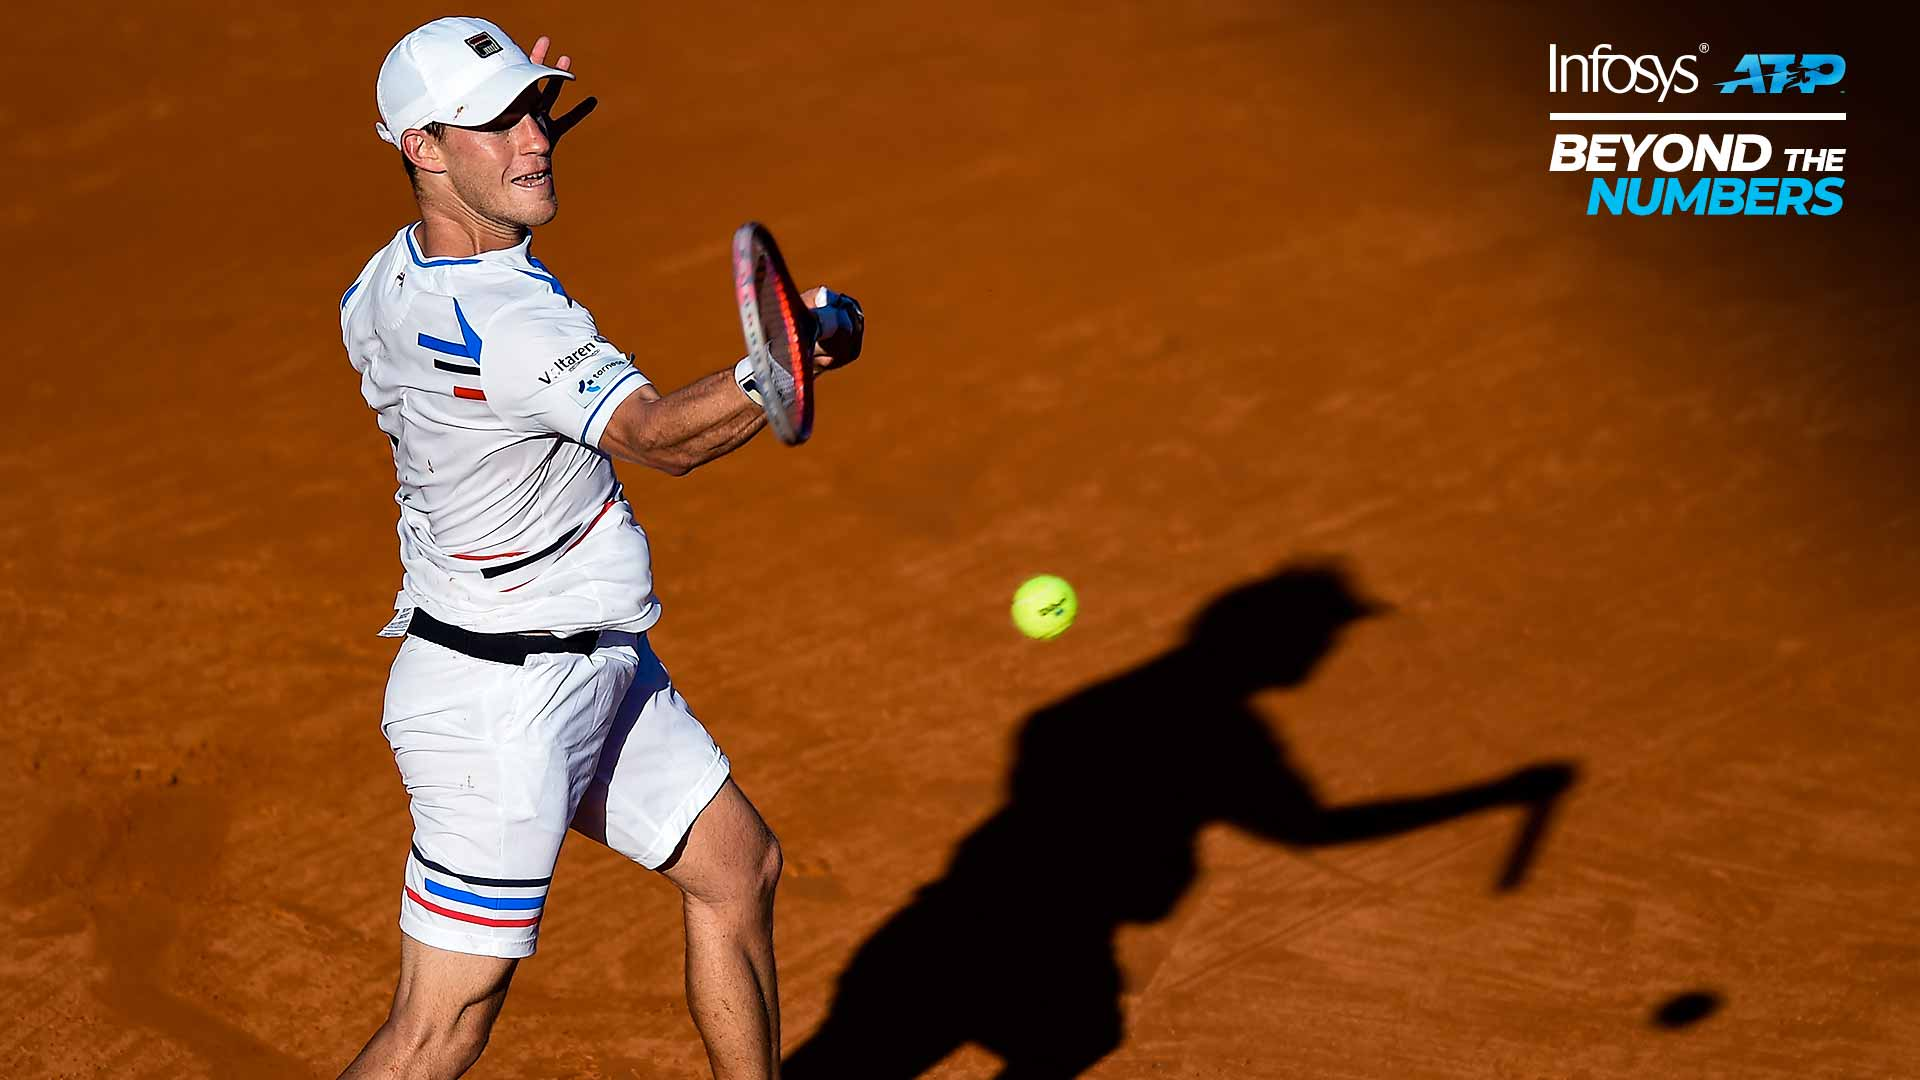 Diego Schwartzman holds his own returning on the ATP Tour